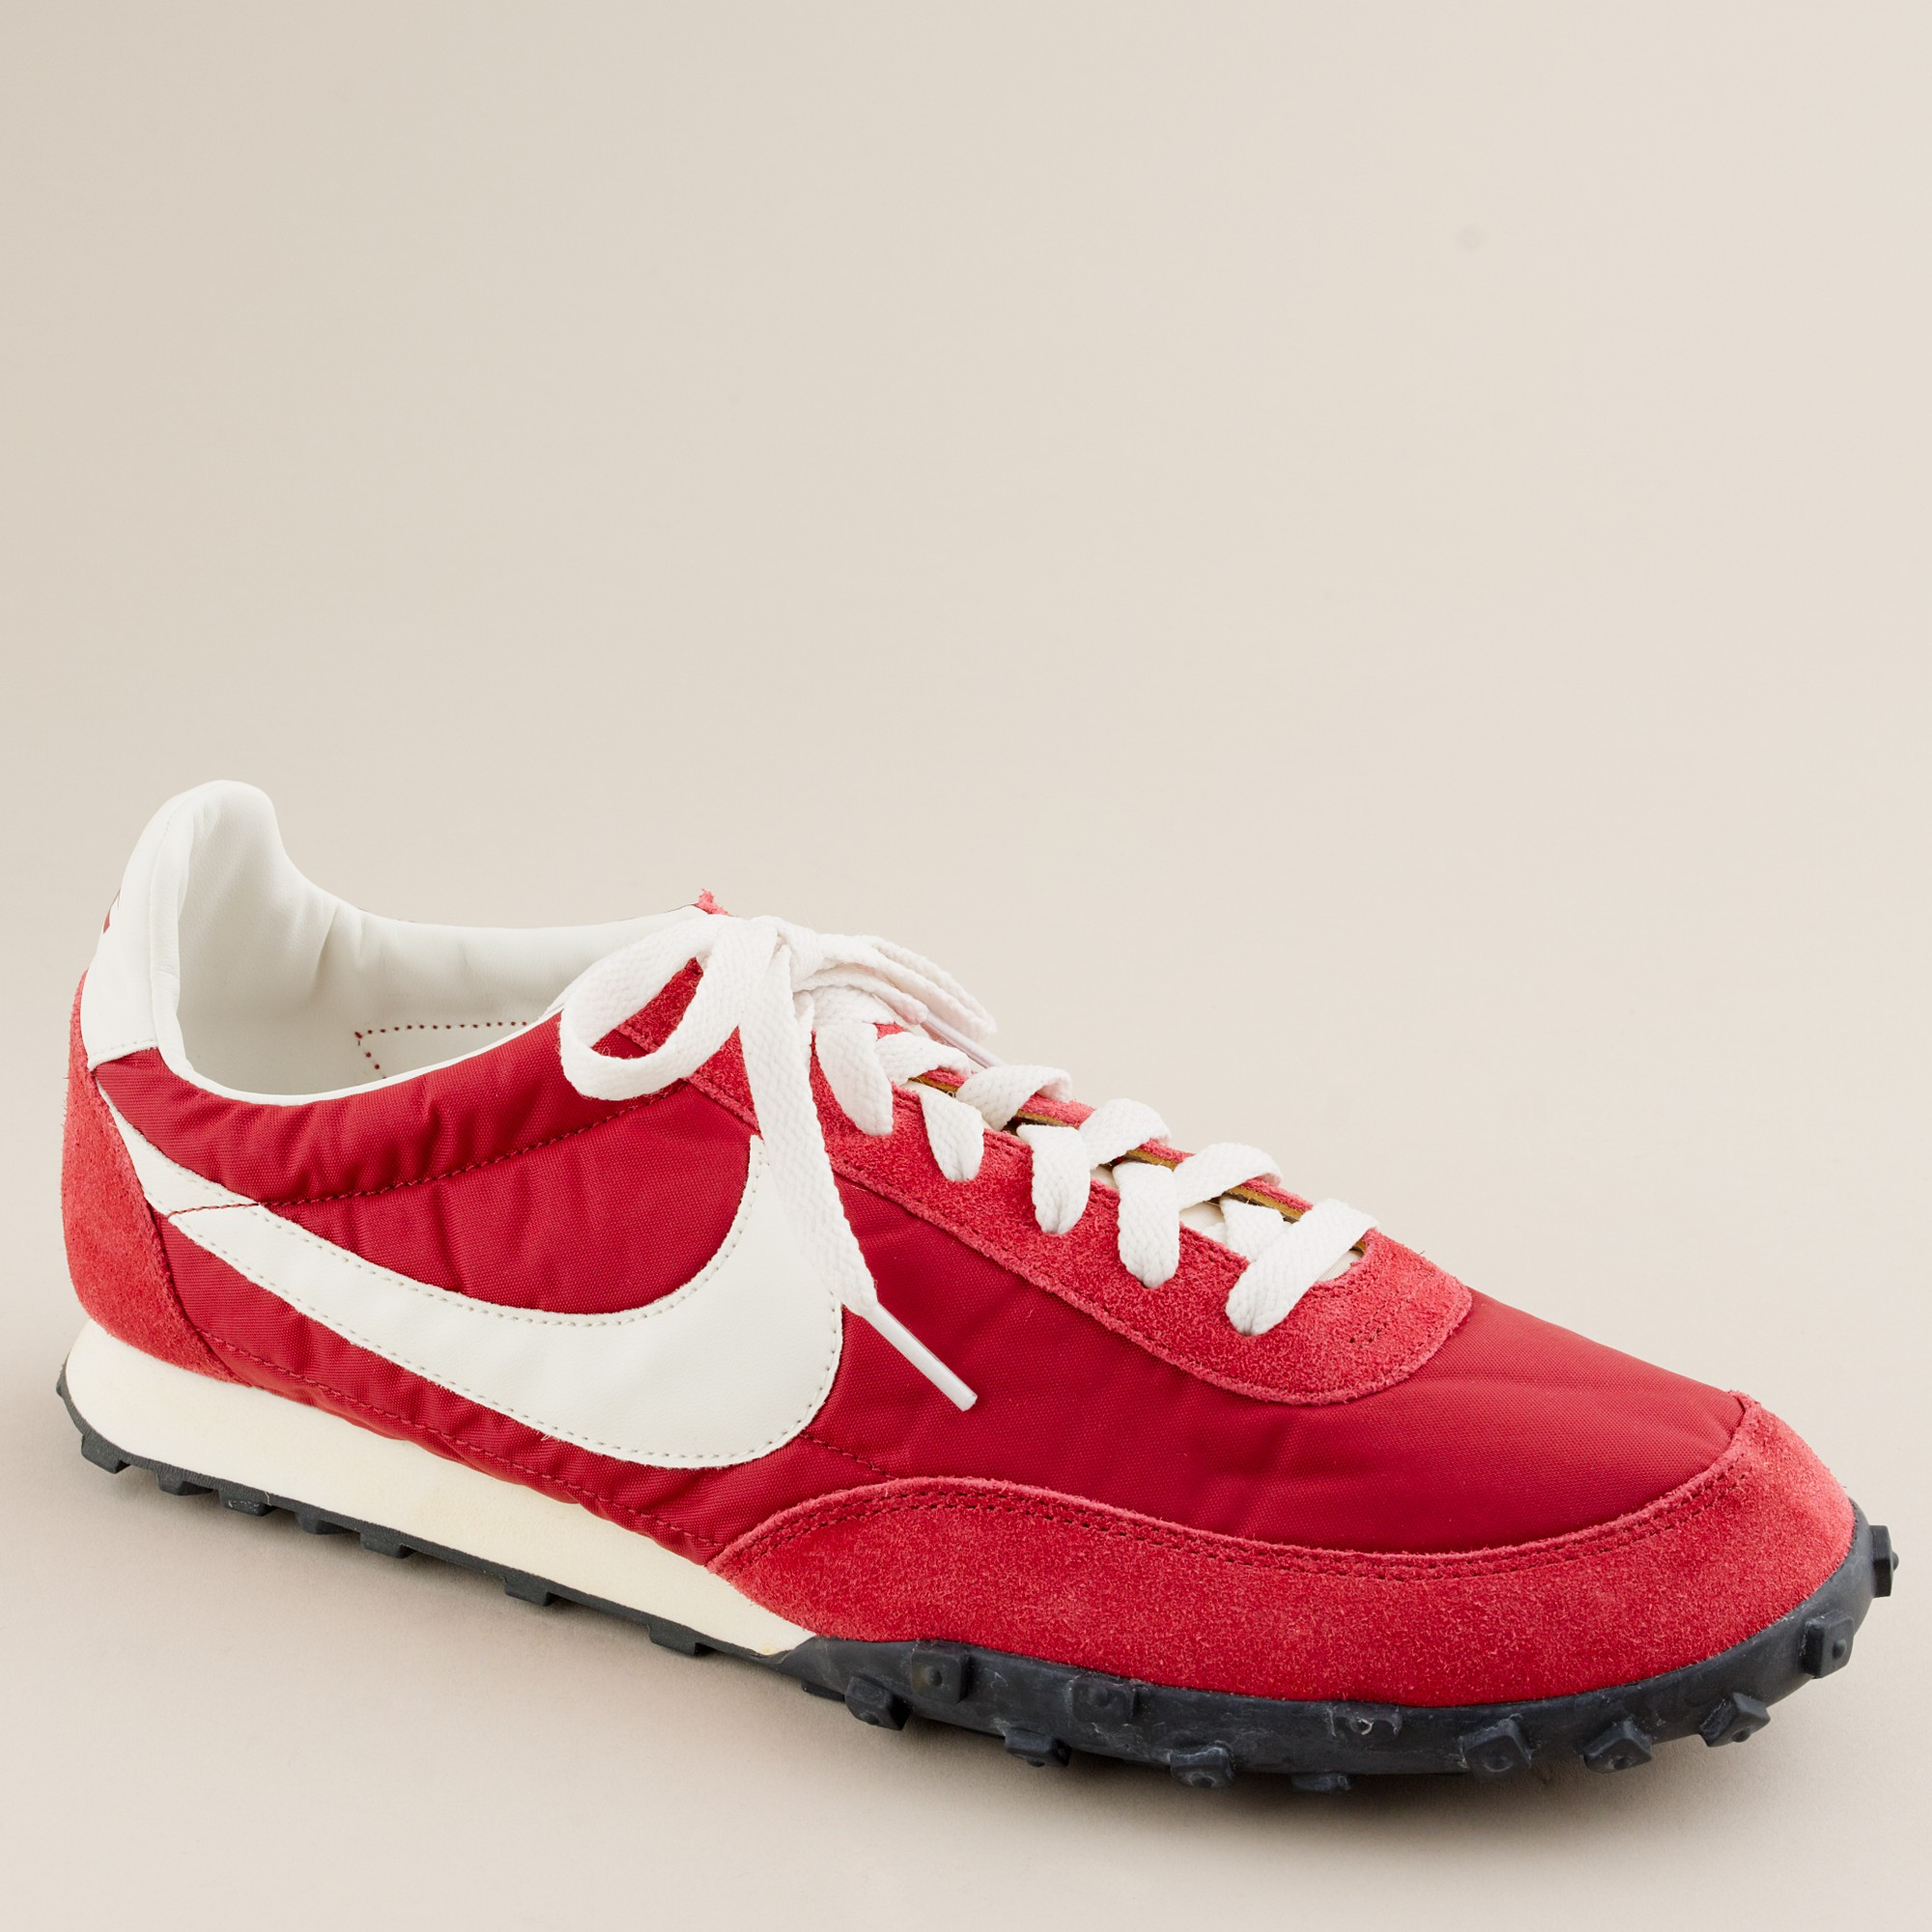 Lyst - J.Crew Nike® Vintage Collection Waffle® Racer Sneakers in Red ... 588ff9e51a